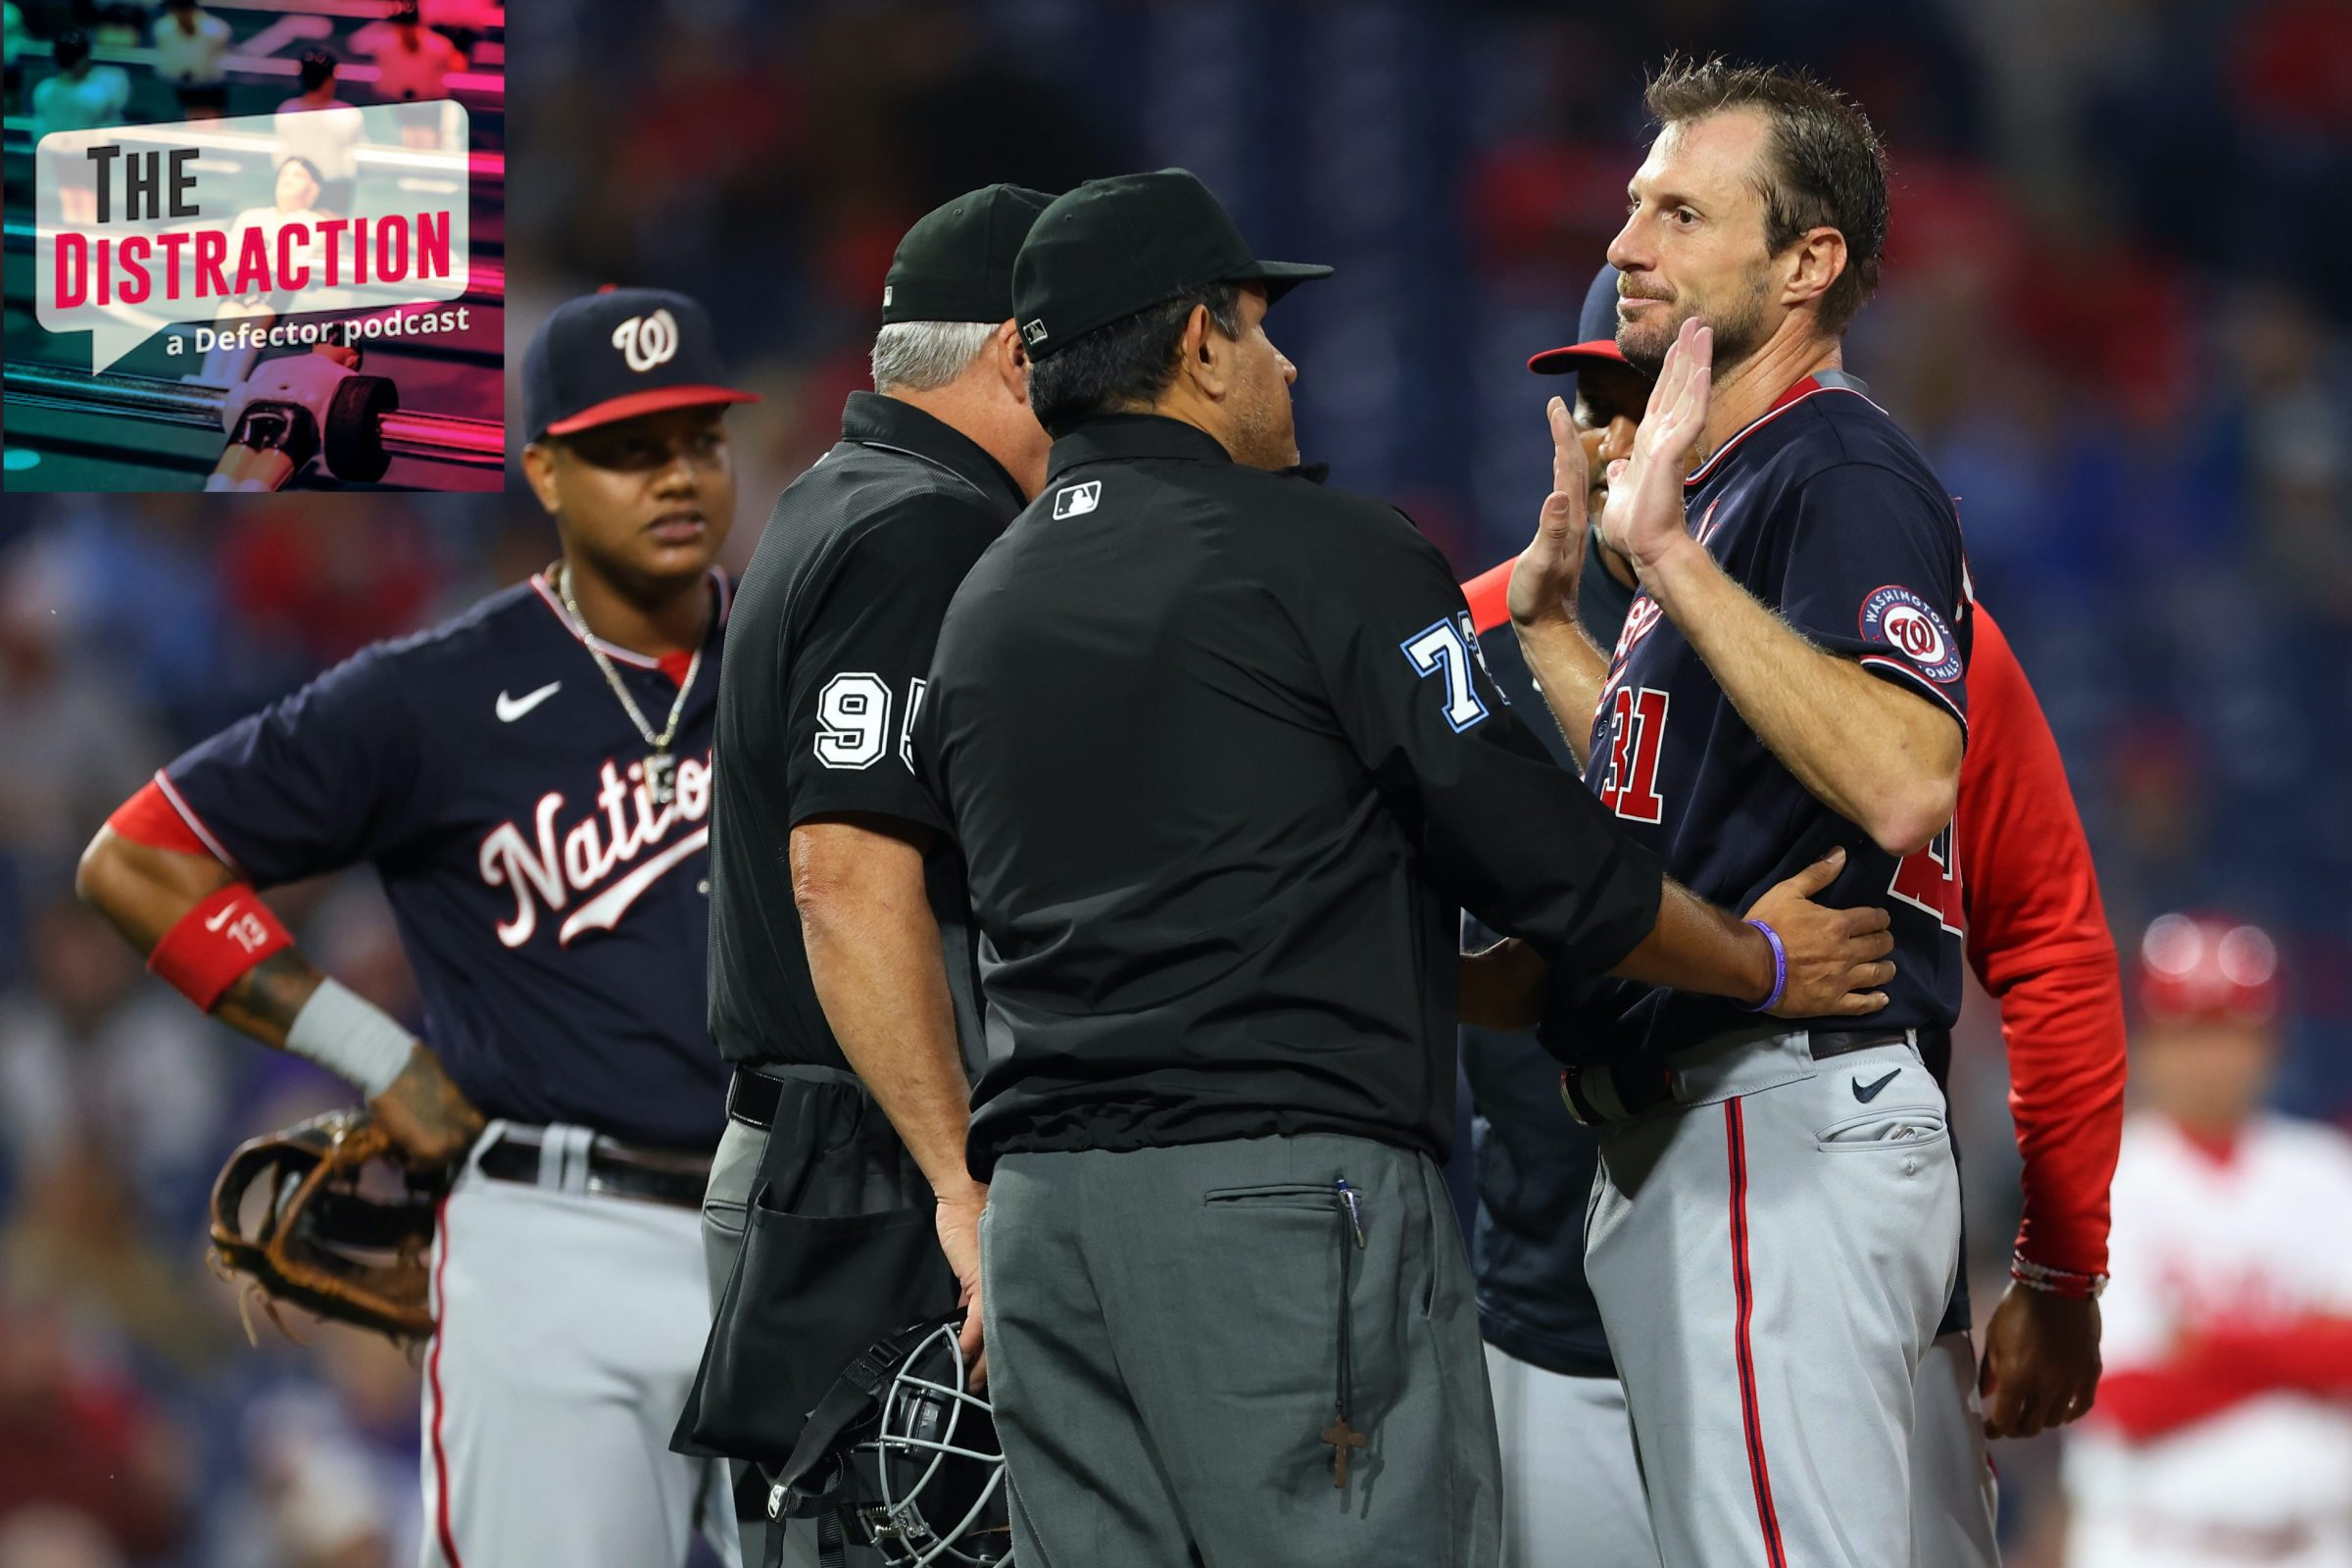 Max Scherzer of the Washington Nationals is inspected on the mound by umpire Tim Timmons during a June game.